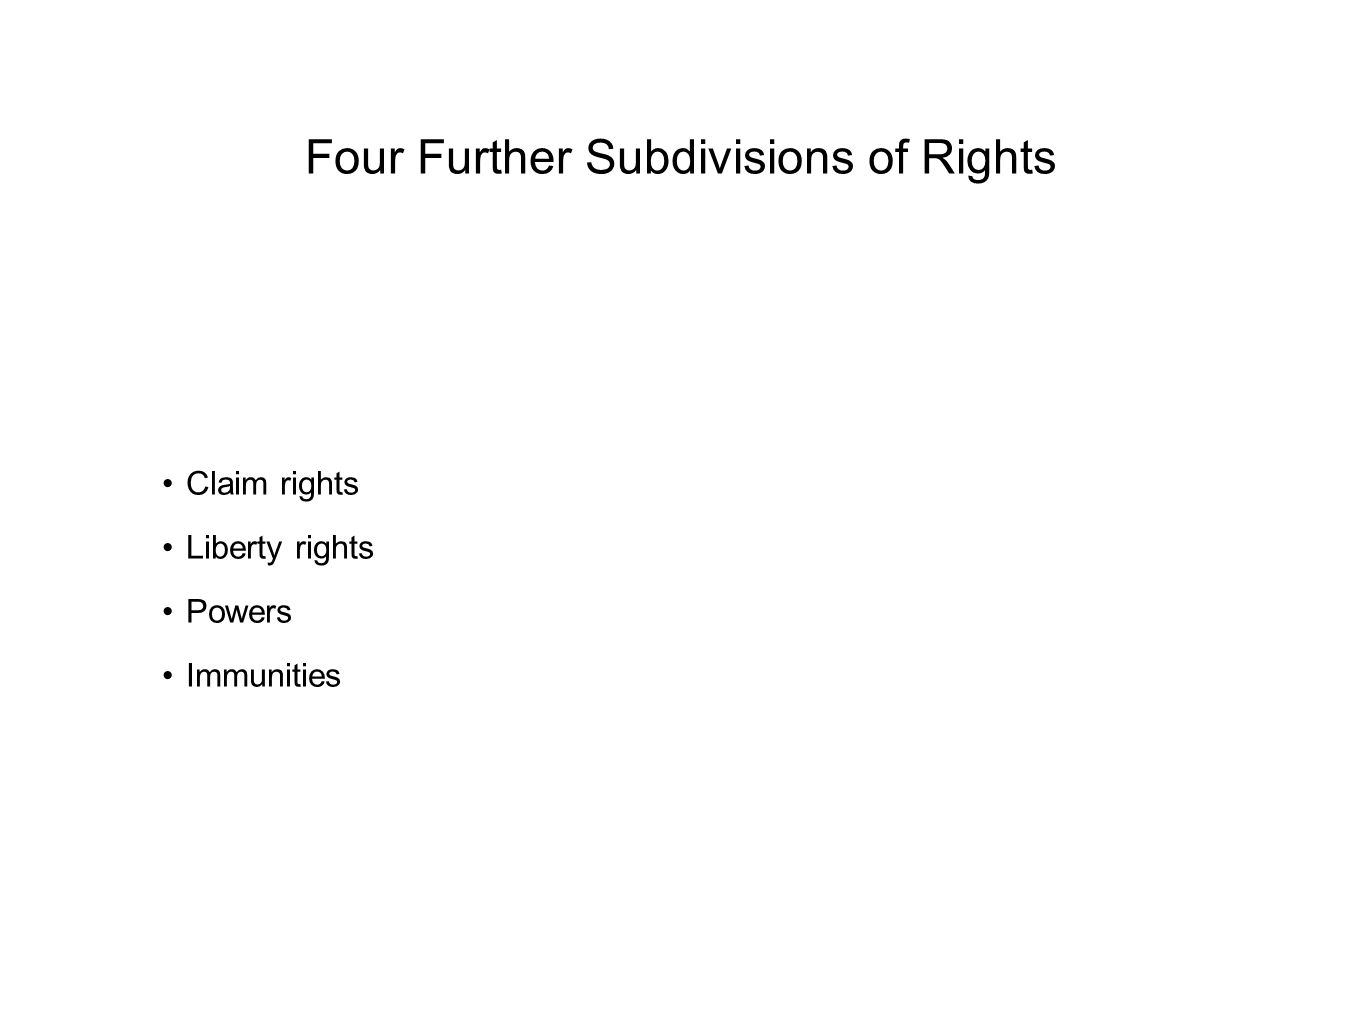 Four Further Subdivisions of Rights Claim rights Liberty rights Powers Immunities